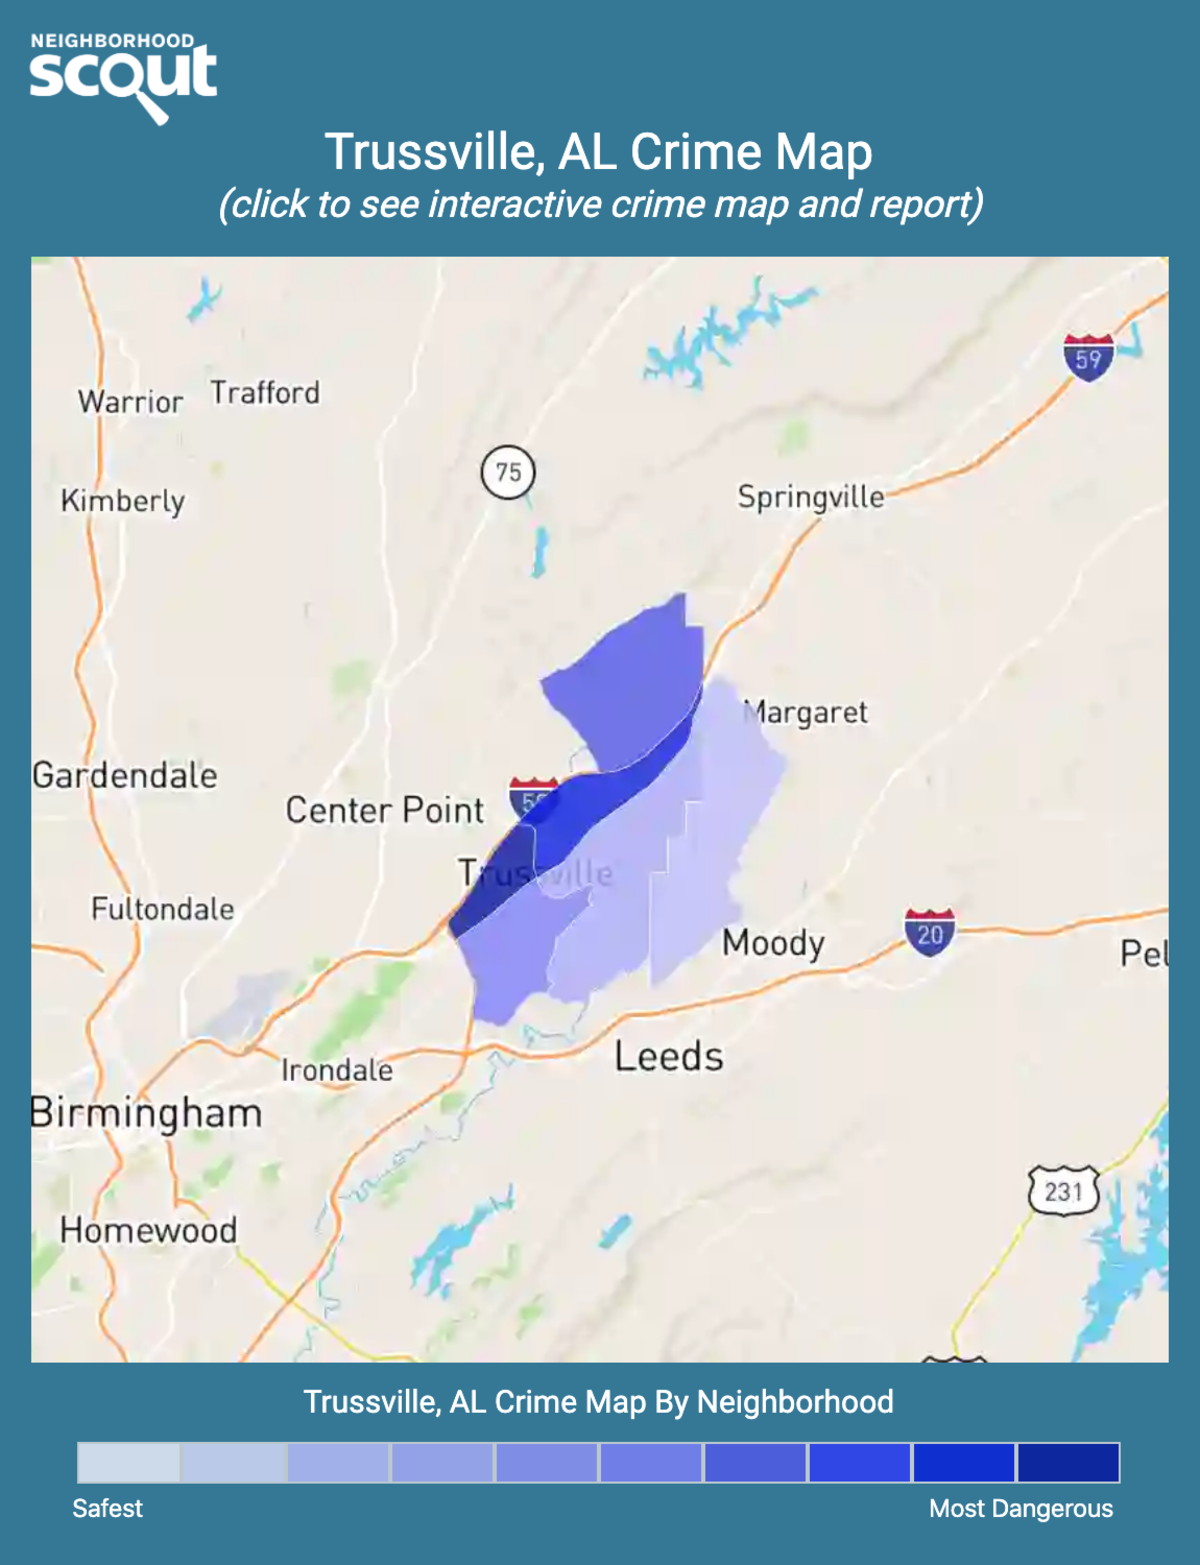 Trussville, Alabama crime map